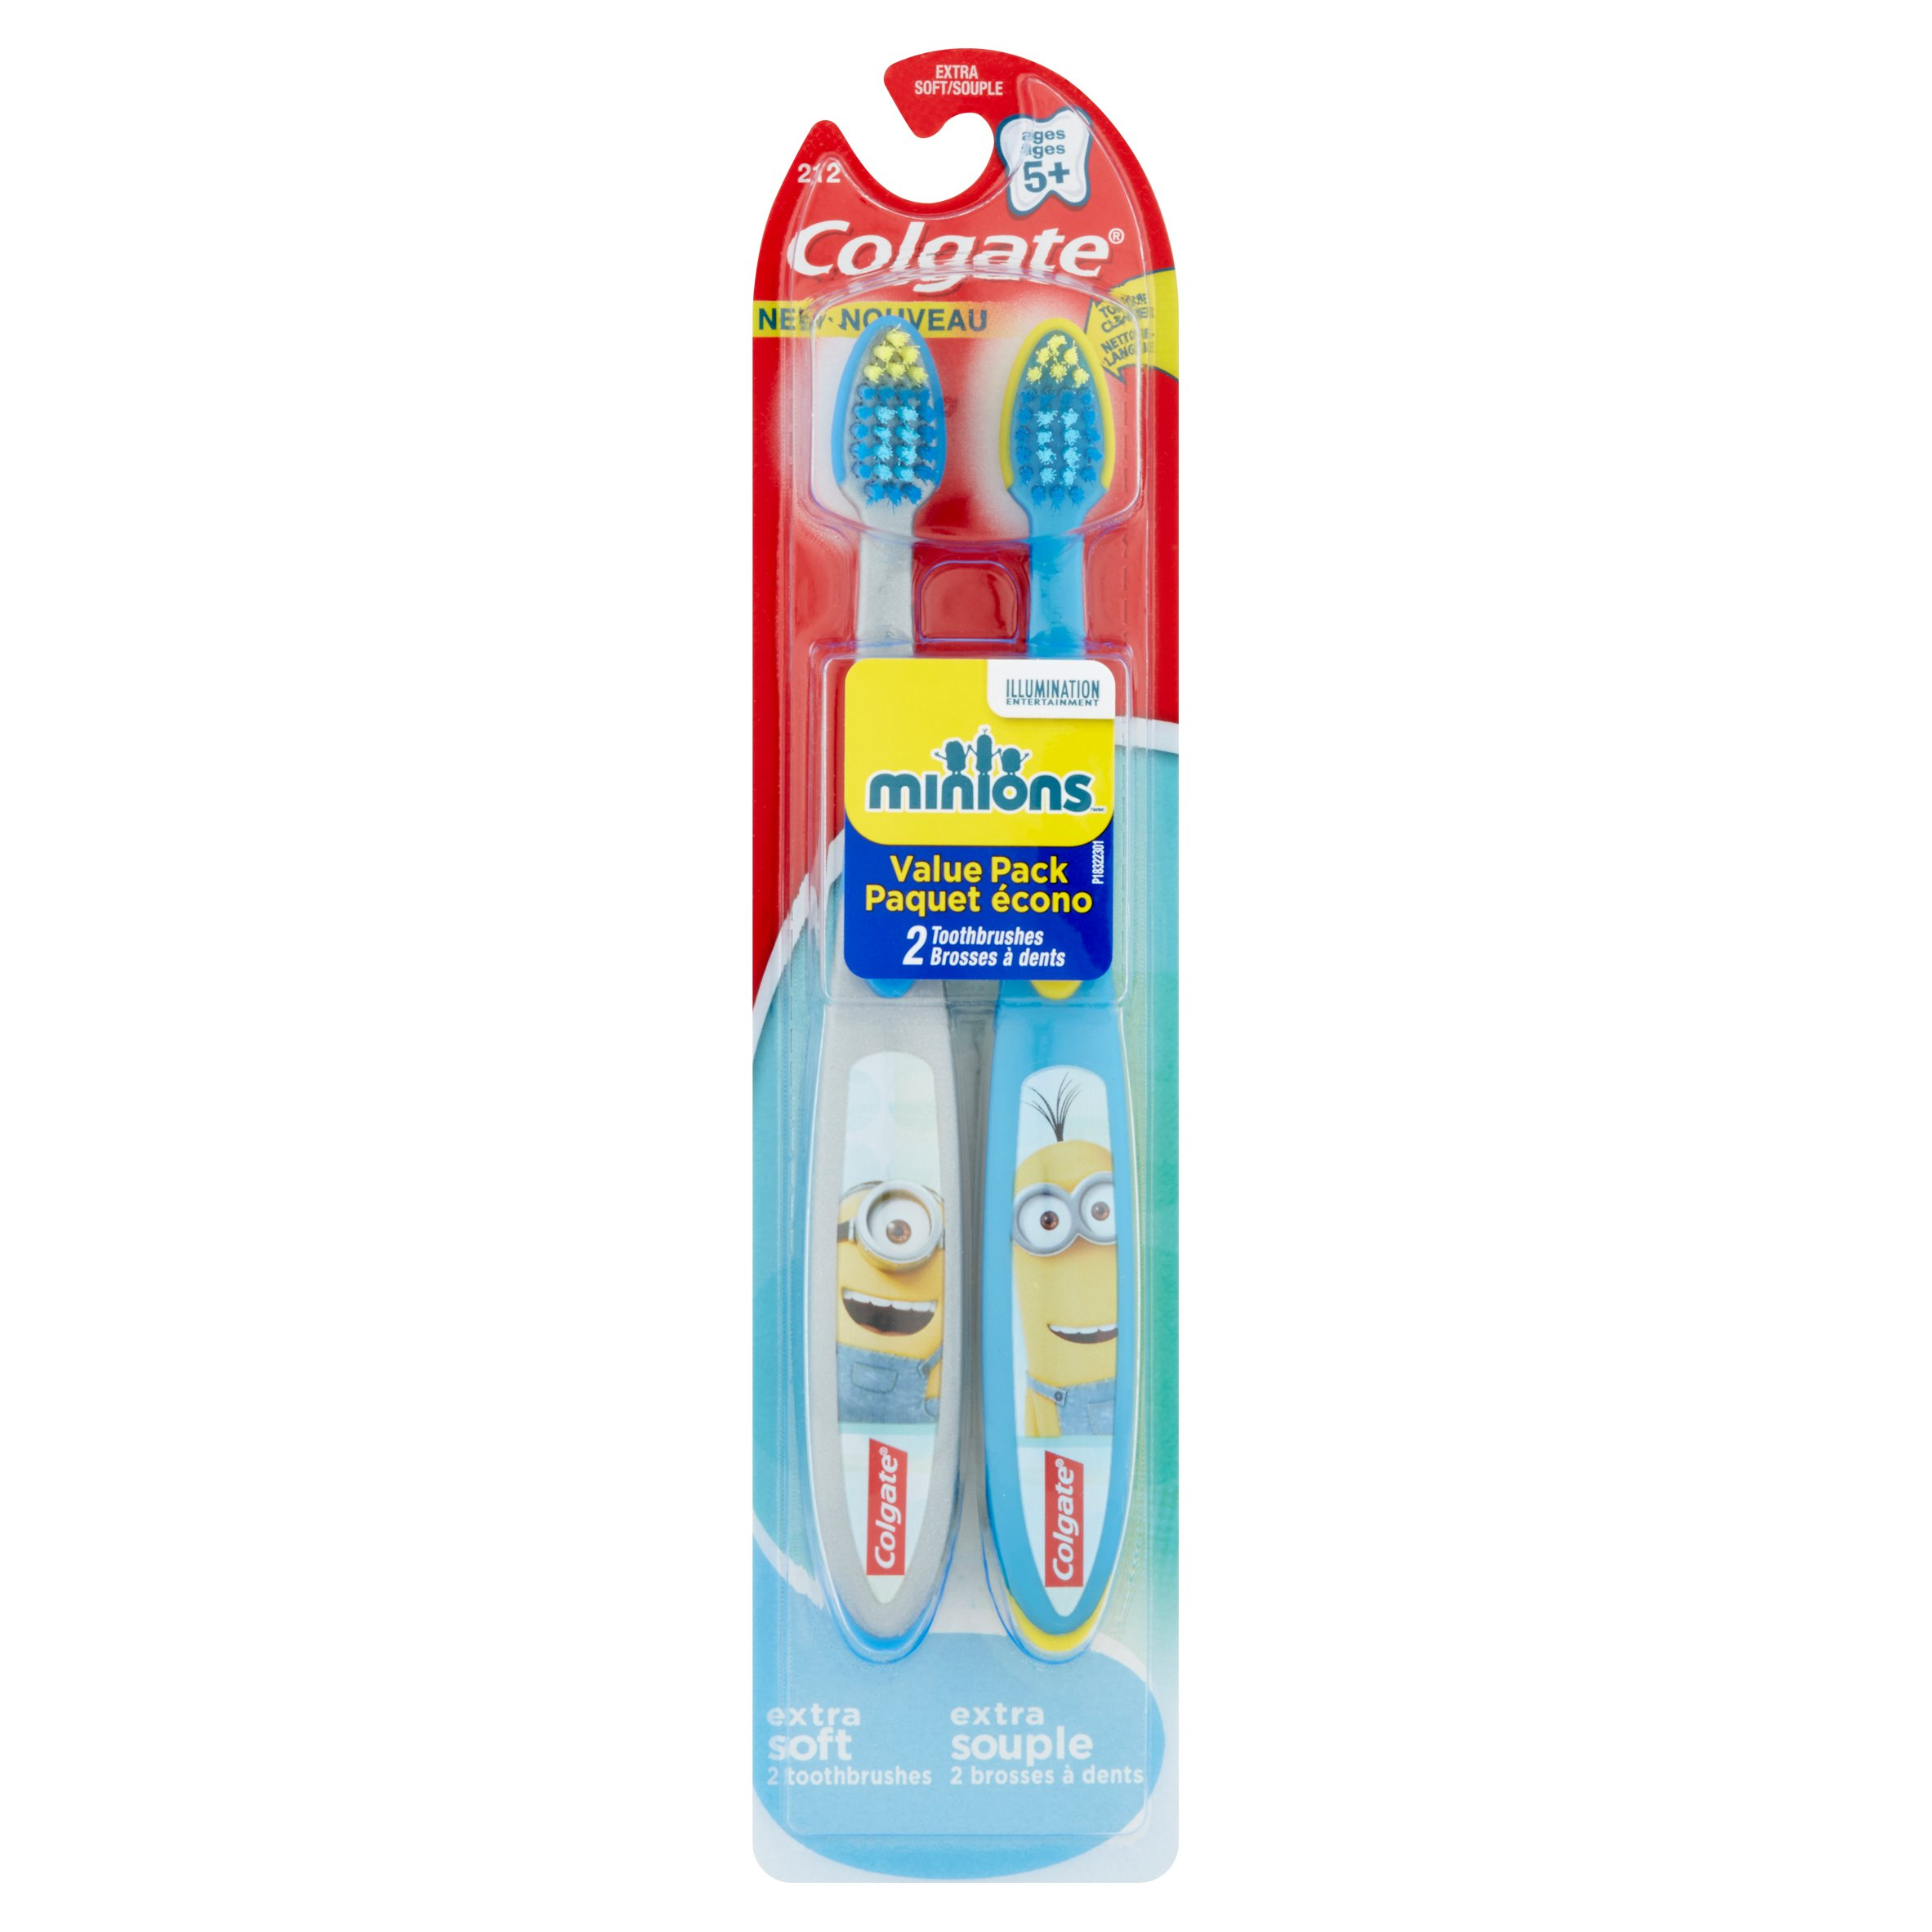 Colgate Minions Extra Soft Toothbrushes Kids 5+ Value Pack, 2 count